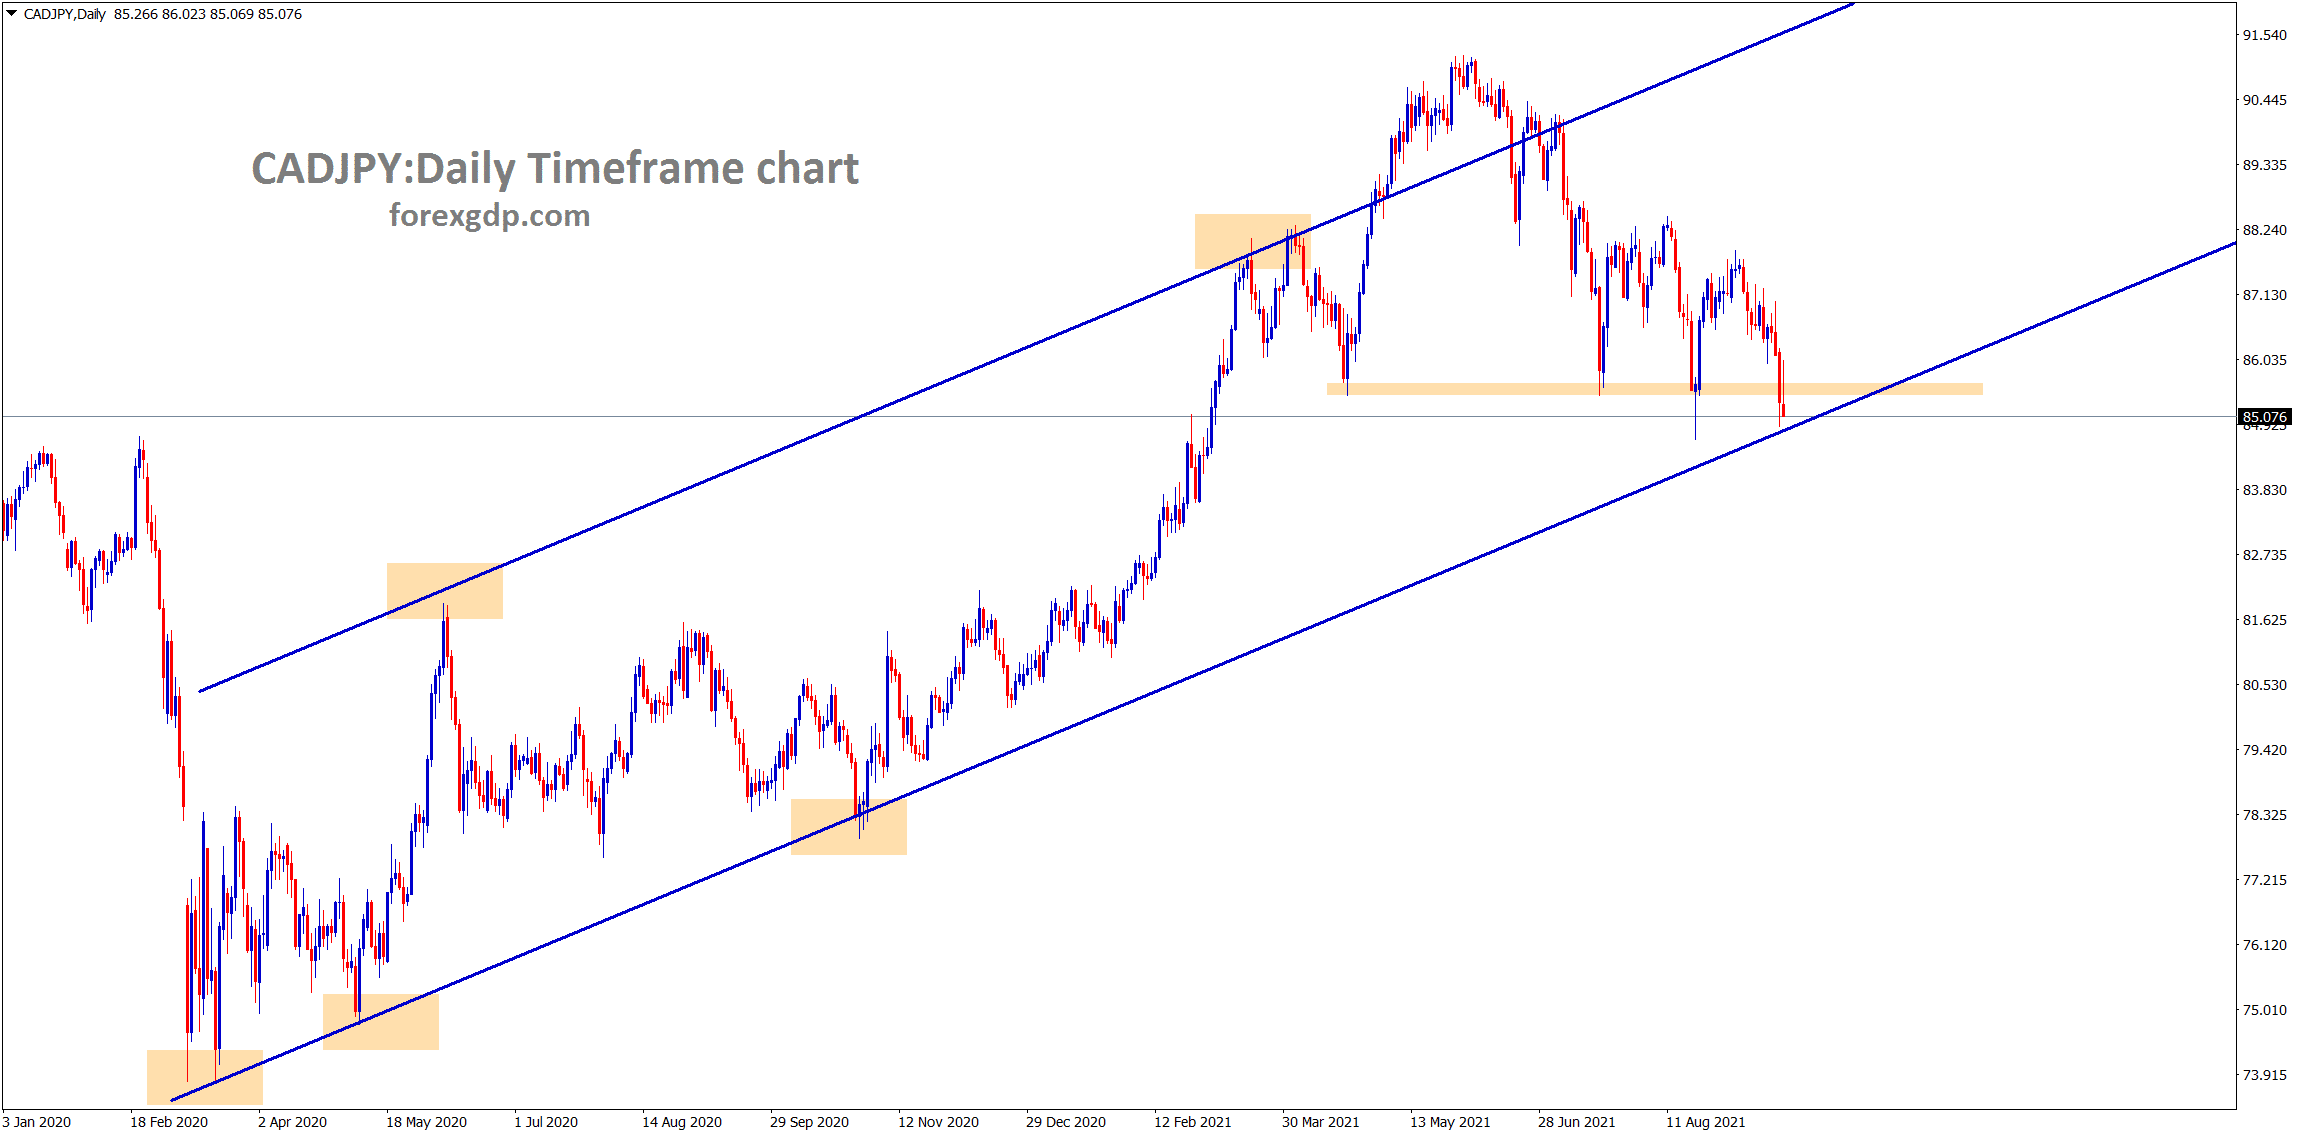 CADJPY hits the higher low area of the Uptrend line and the horizontal support area